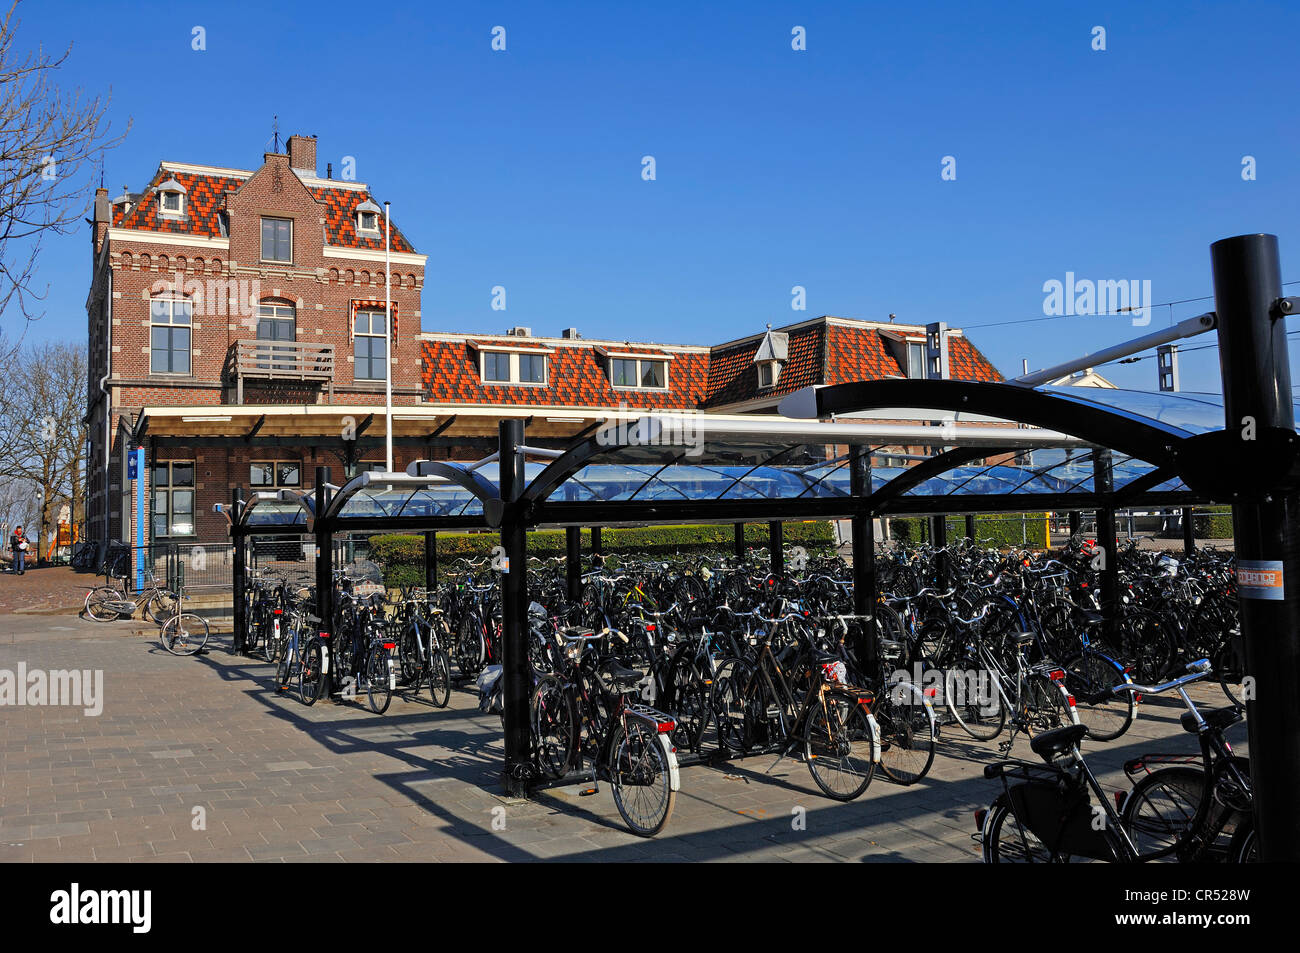 Bicycles parked at the railway station in Enkhuizen, North Holland, Holland, Netherlands, Europe - Stock Image